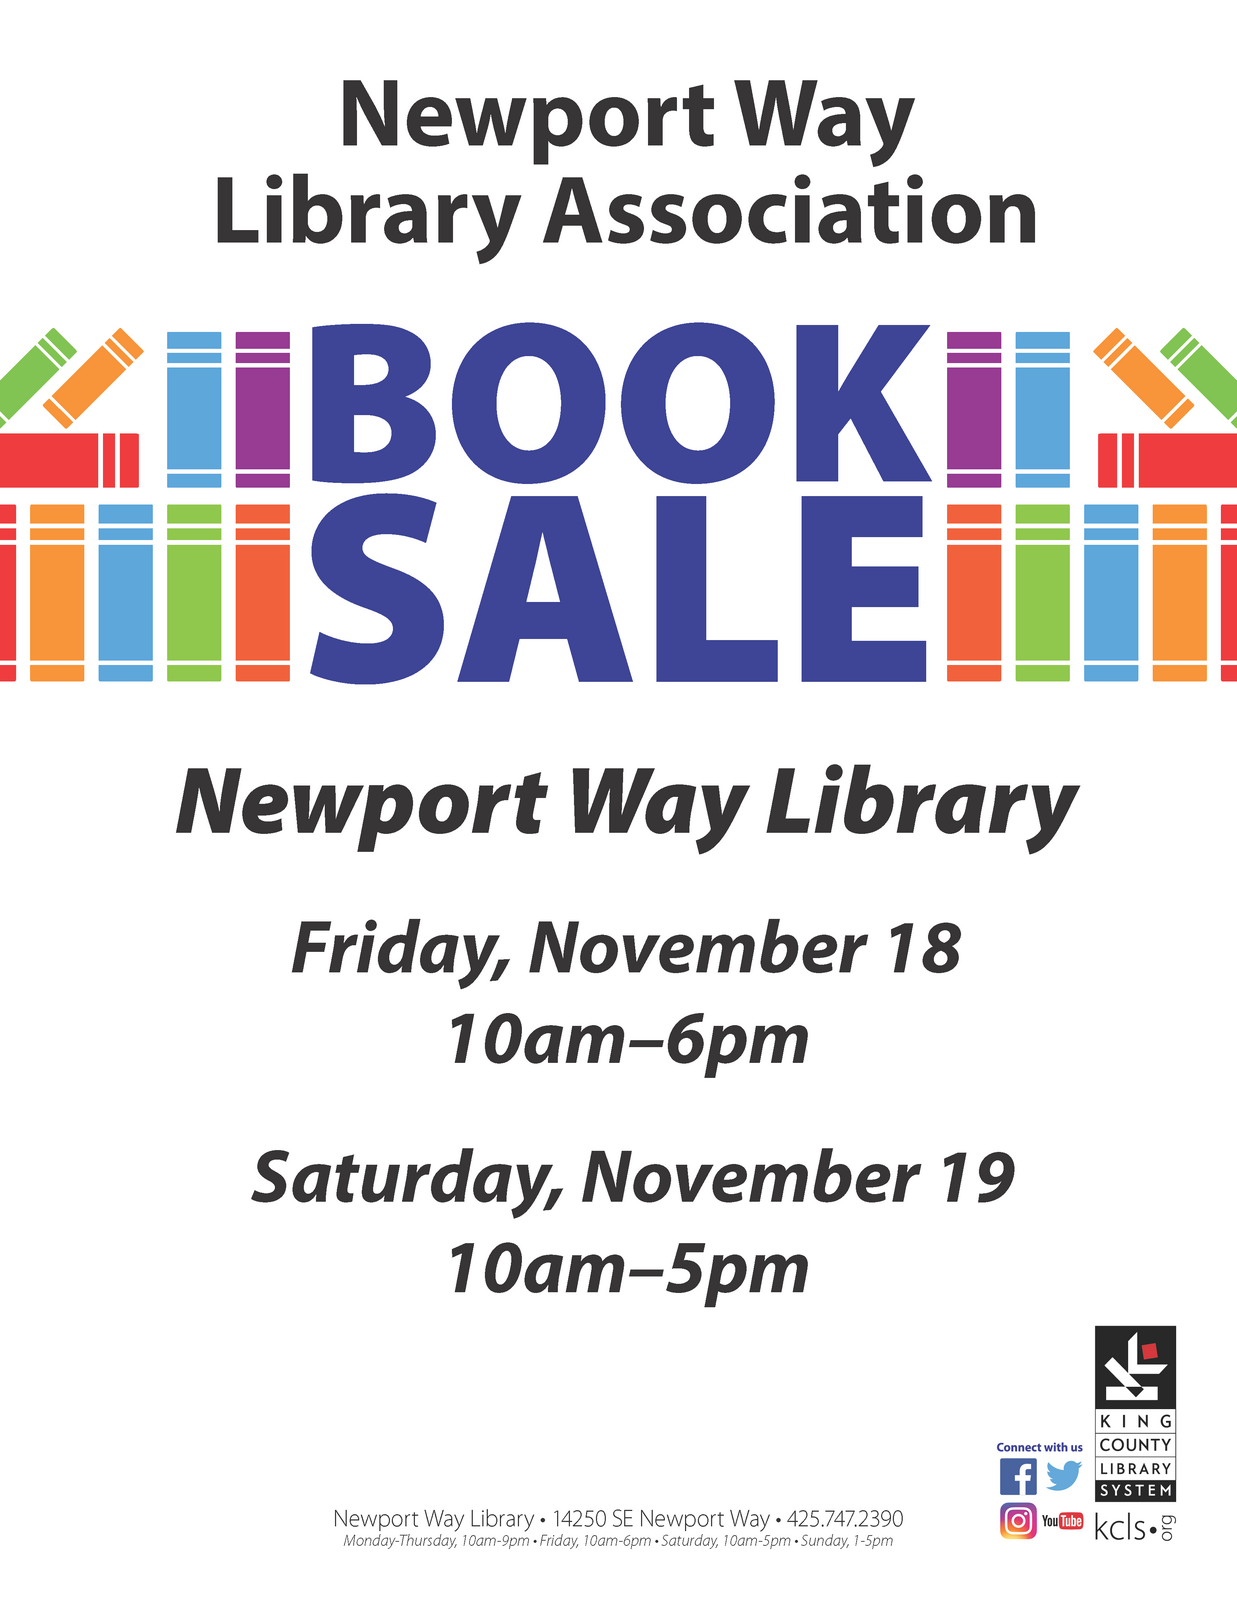 Nov 18 Book Sale Newport Way Library Association Nextdoor